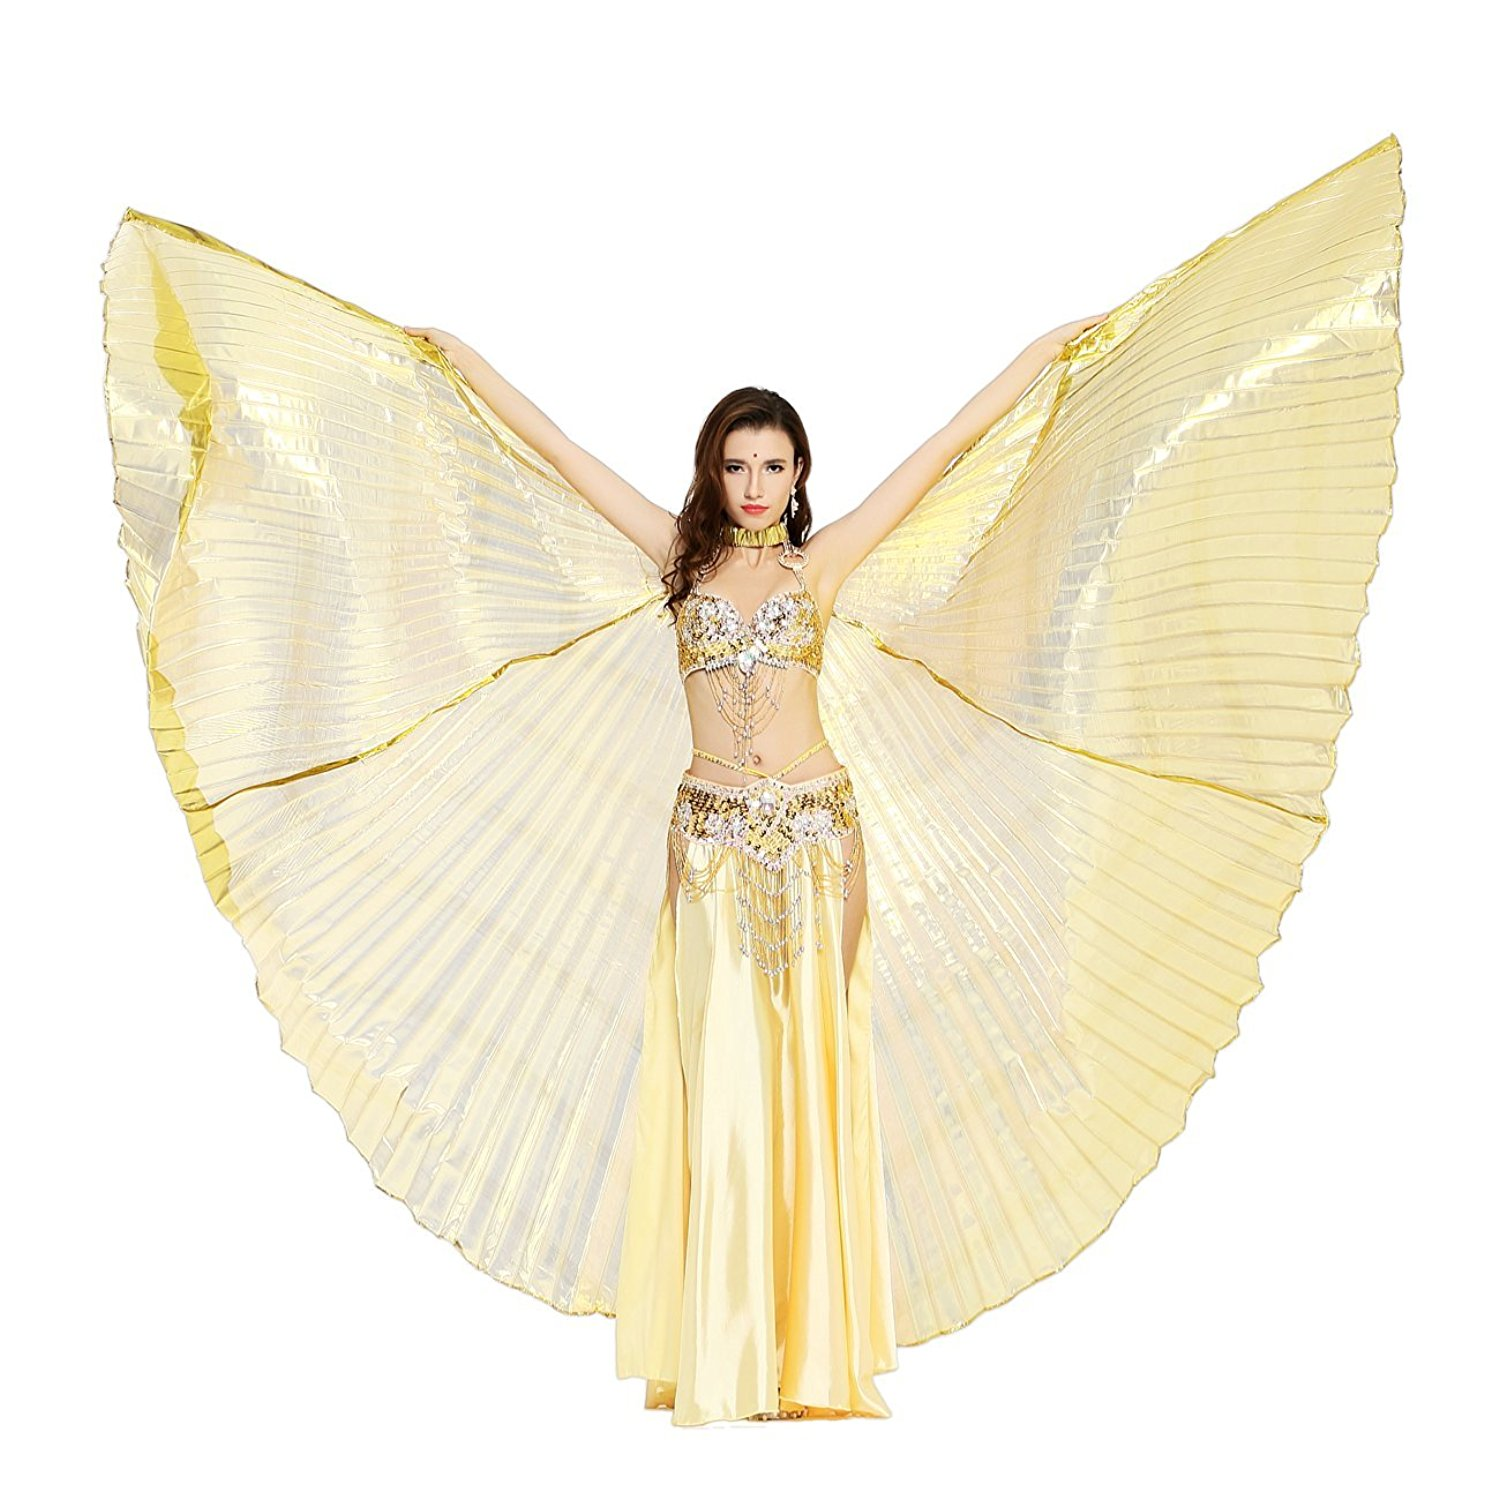 Dance Fairy Belly Dance 360 Degree Isis Wings with Portable Flexible Sticks - GOLD (HALF TRANSPARENT)